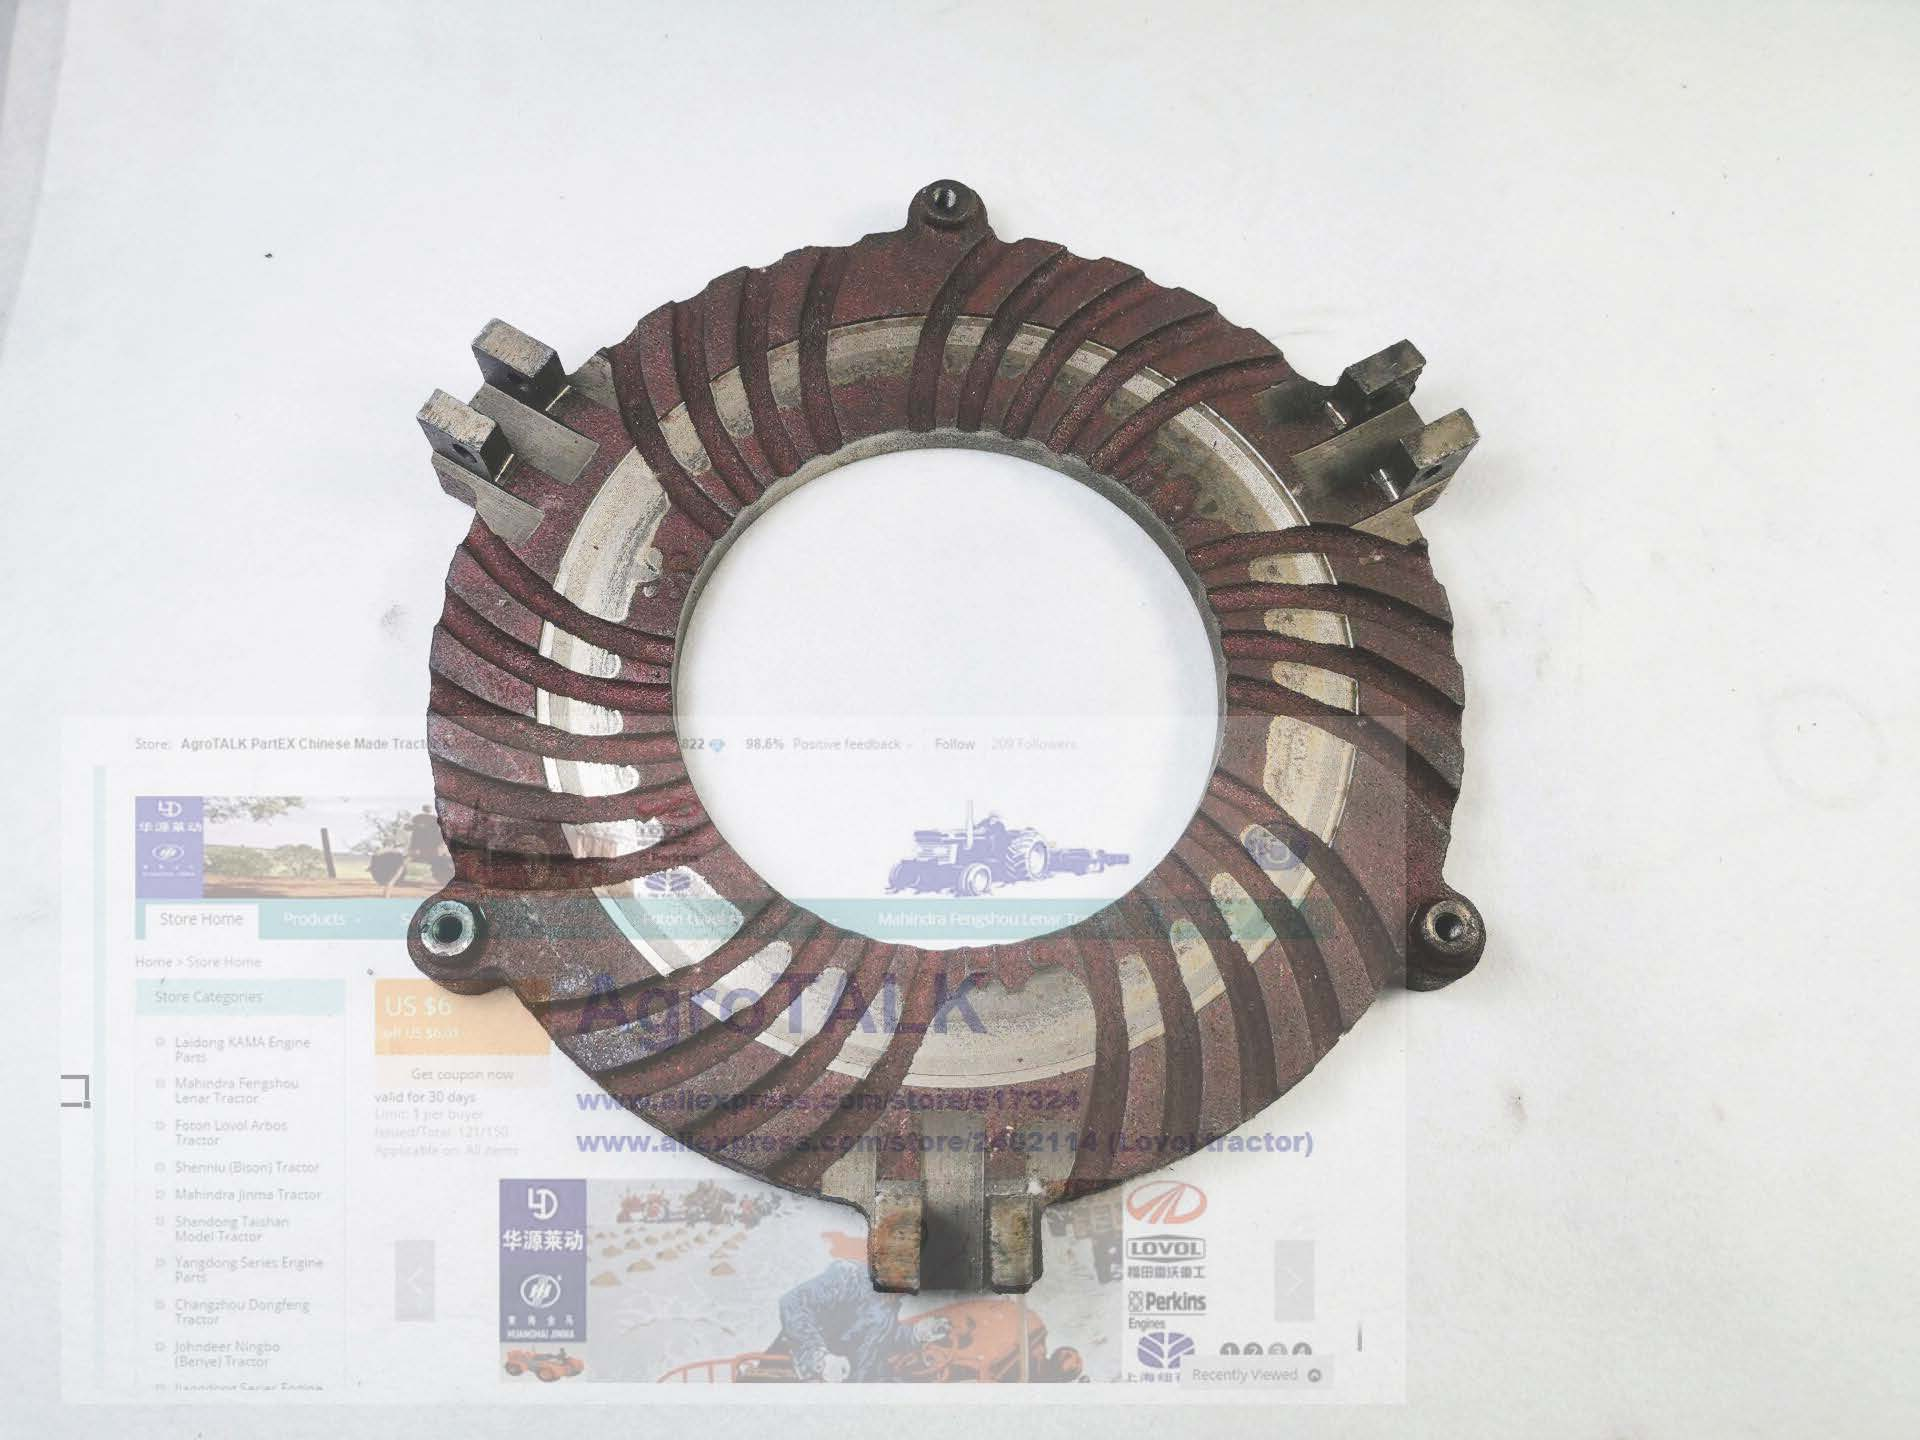 Shanghai tractor SH-654, the main pressure plate, part number:51321976Shanghai tractor SH-654, the main pressure plate, part number:51321976